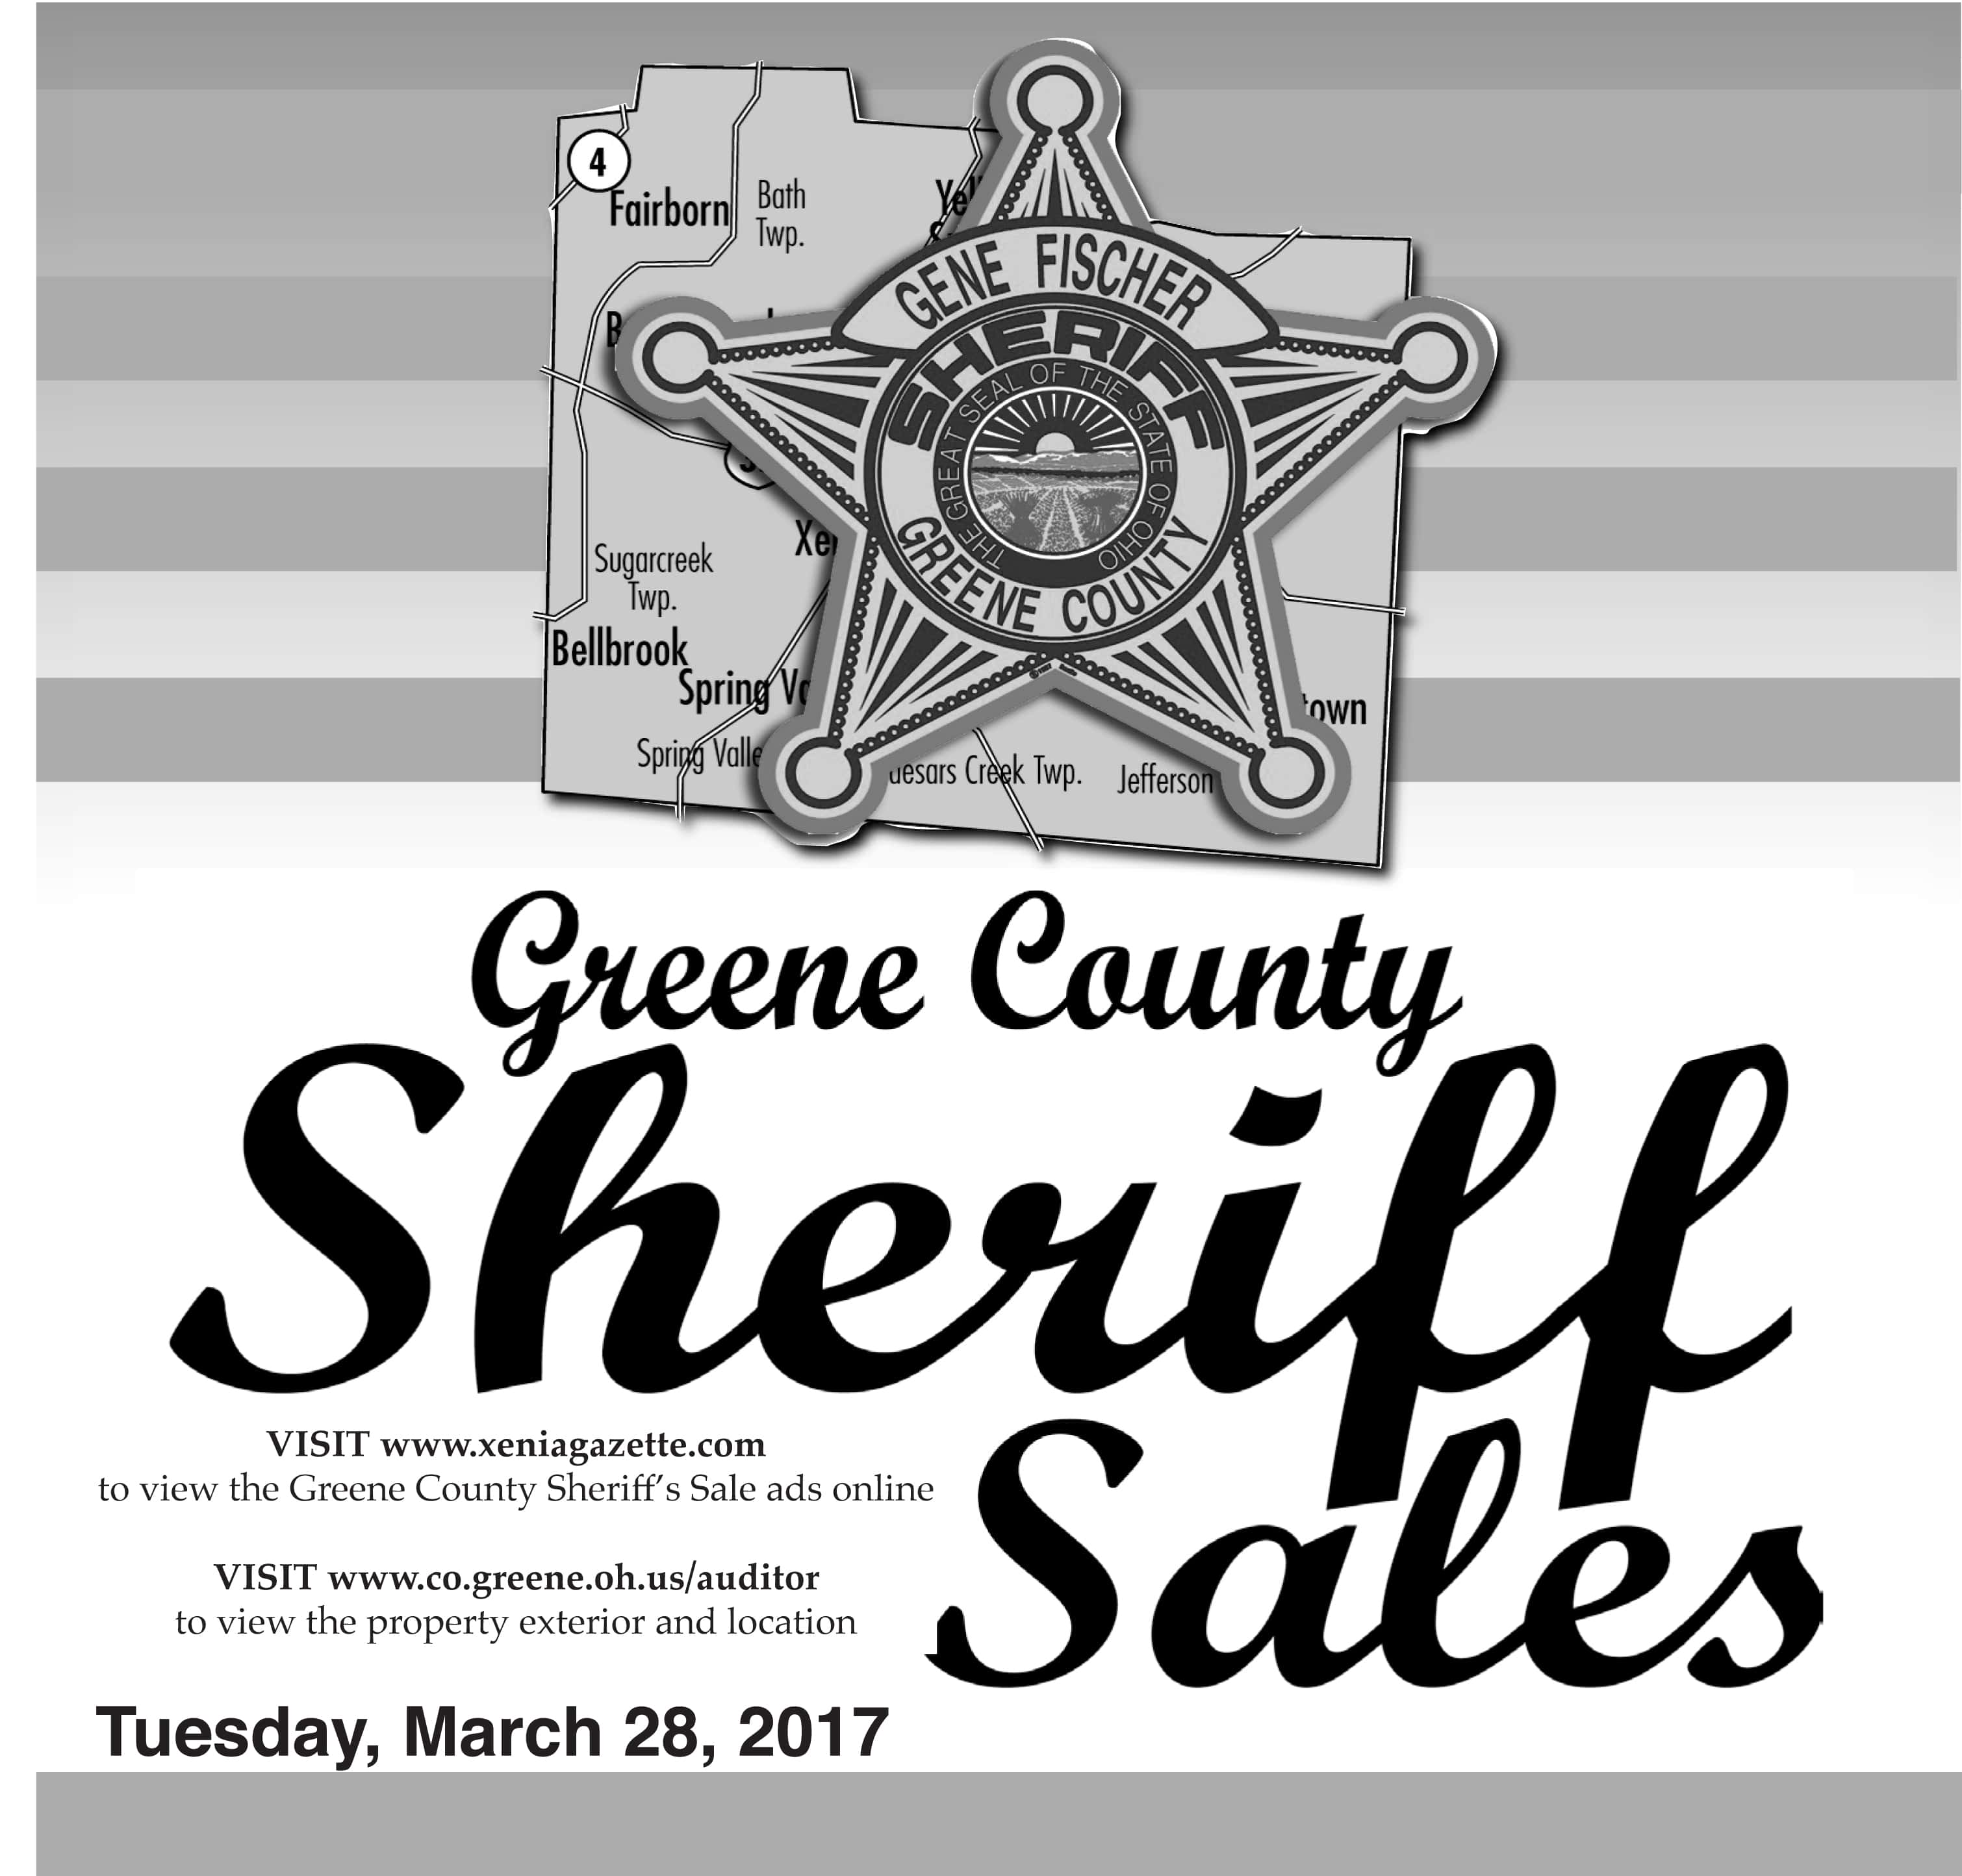 Sheriff Sales: March 28, 2017